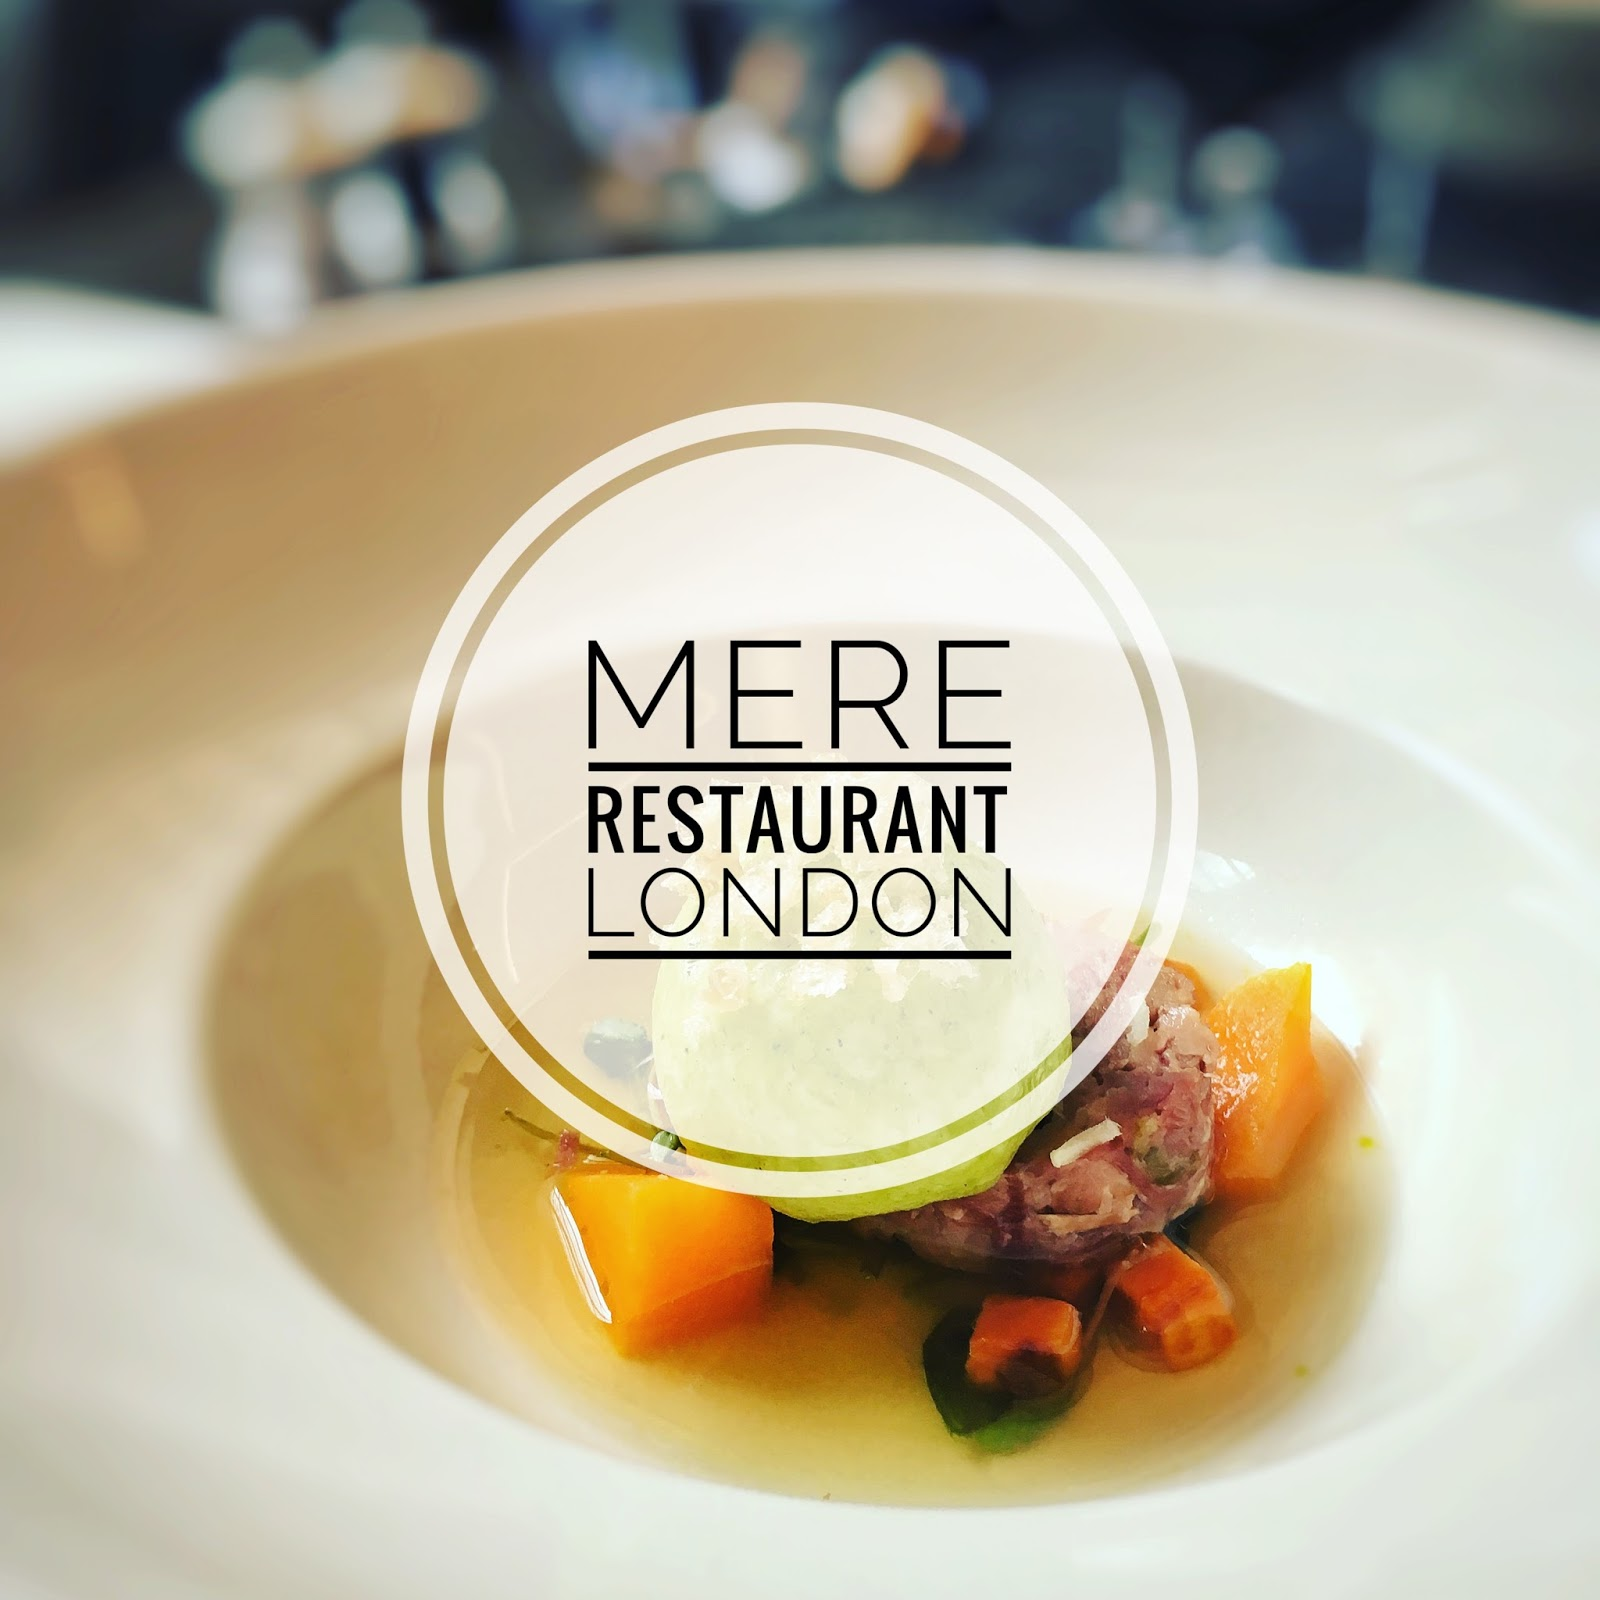 A dish from Mere restaurant London